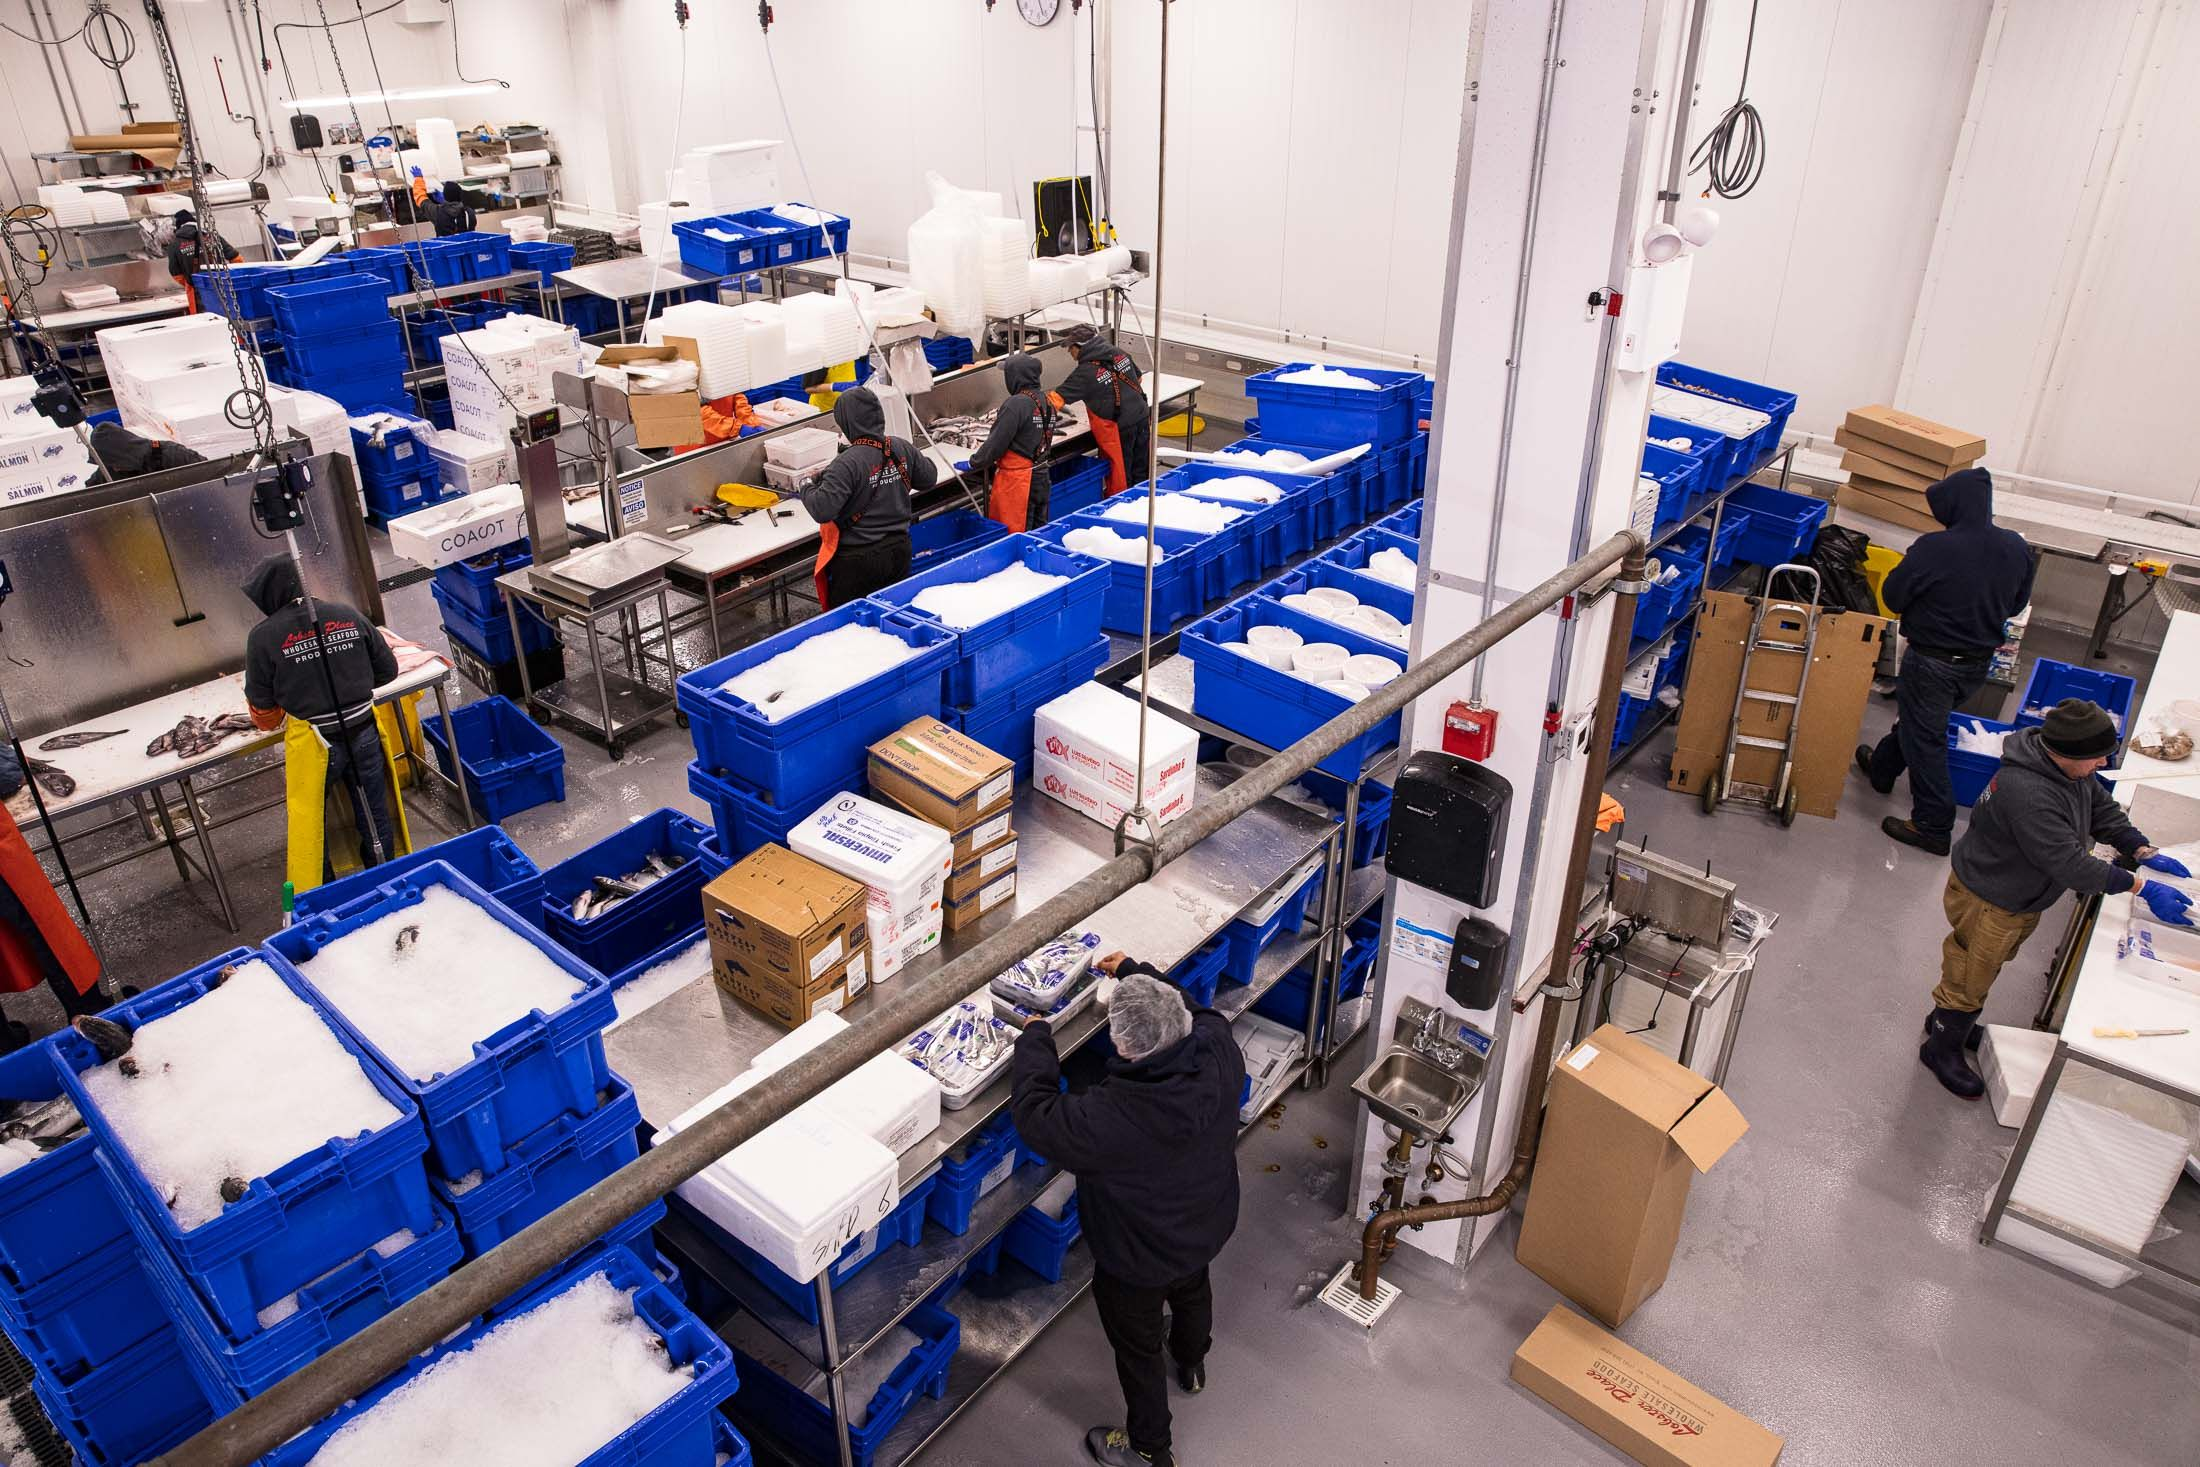 Lobster Place Wholesale packing and shipping facility in the Bronx